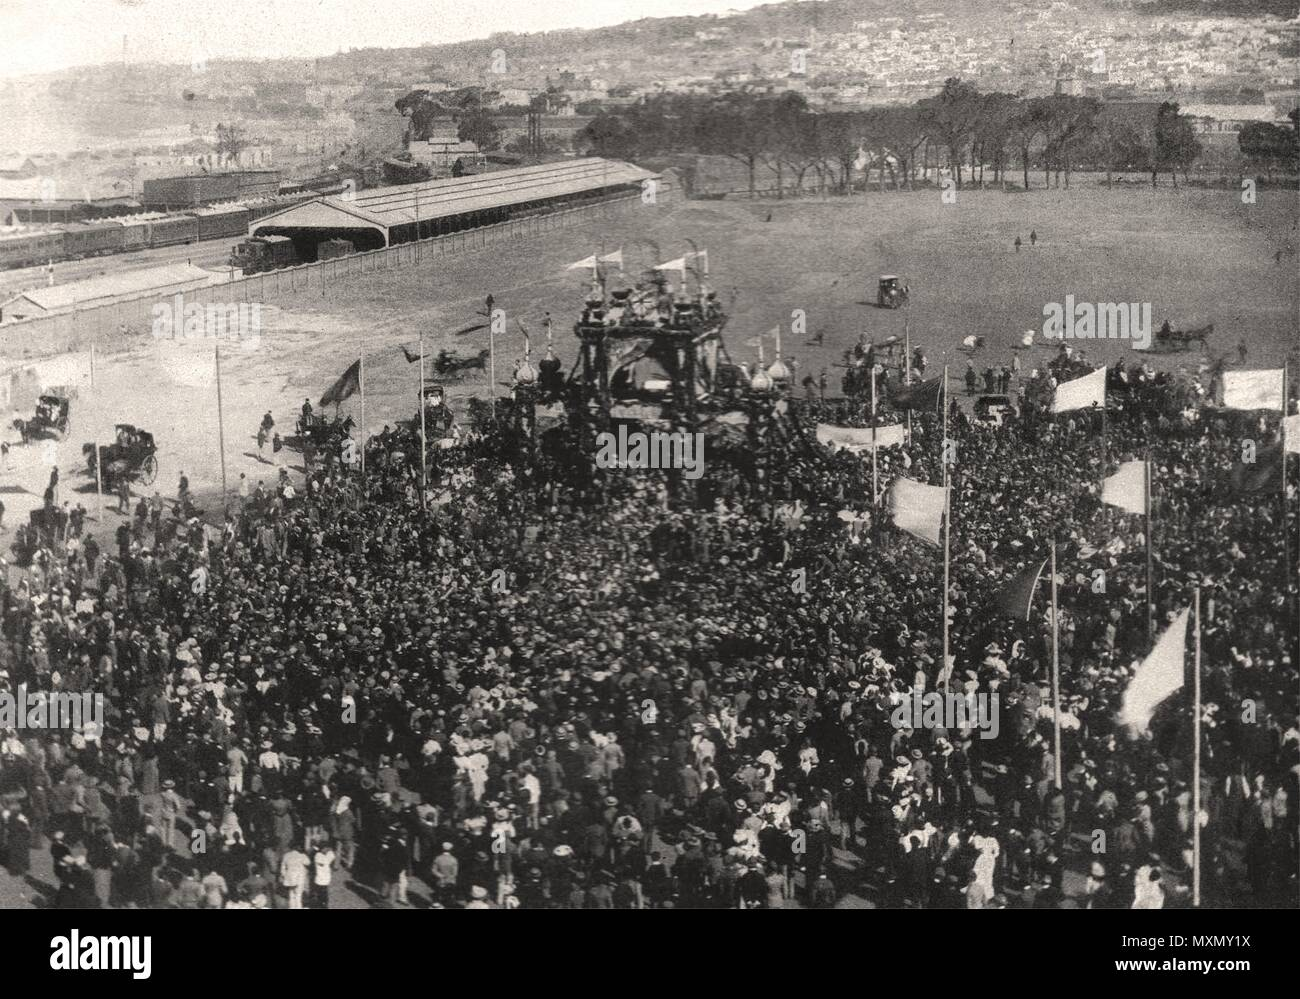 Address to Cecil Rhodes on the Parade, Cape Town. South Africa 1897. The Illustrated London News - Stock Image